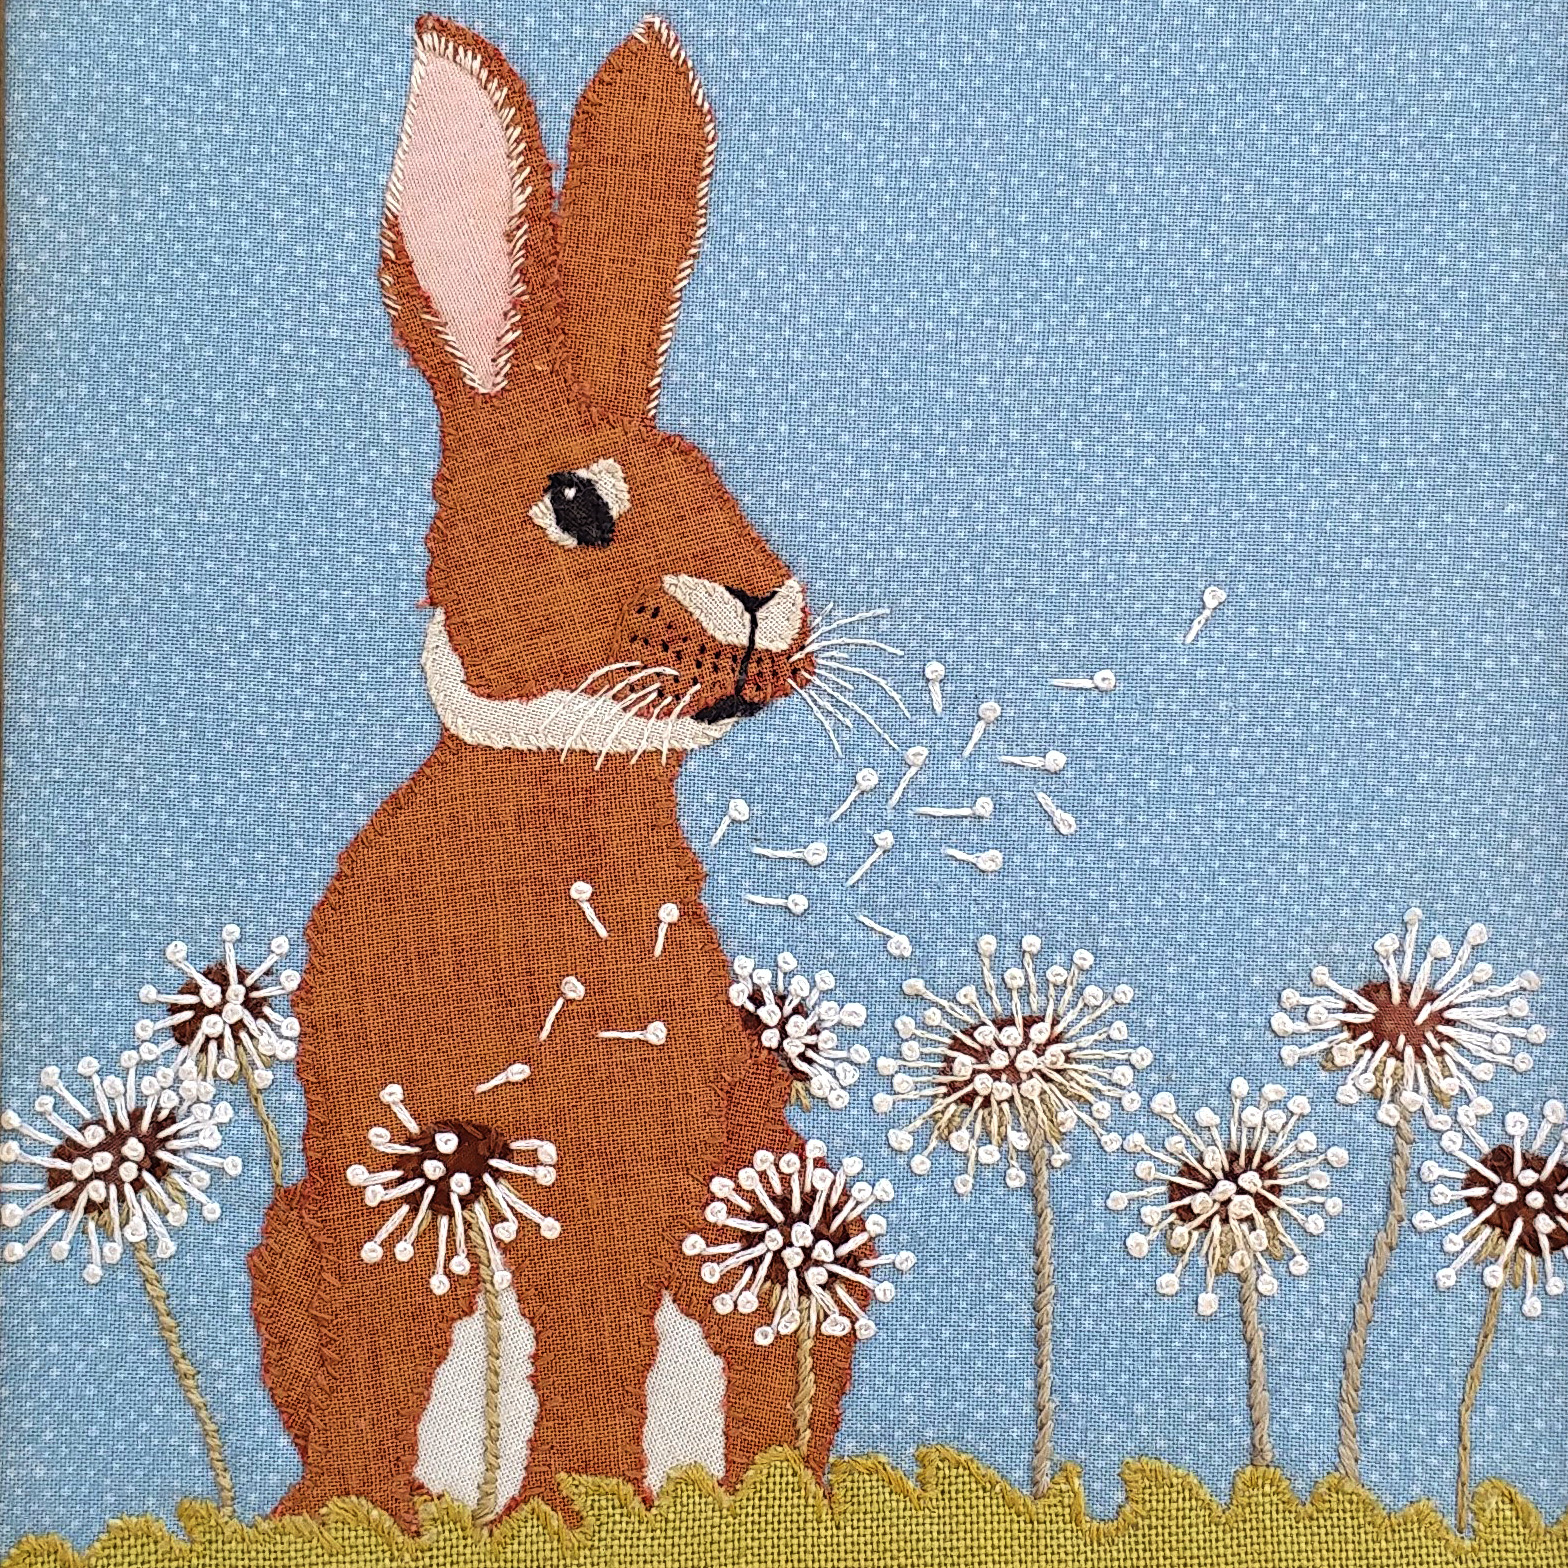 RABBIT AND DANDILIONS CLOSE UP.jpg